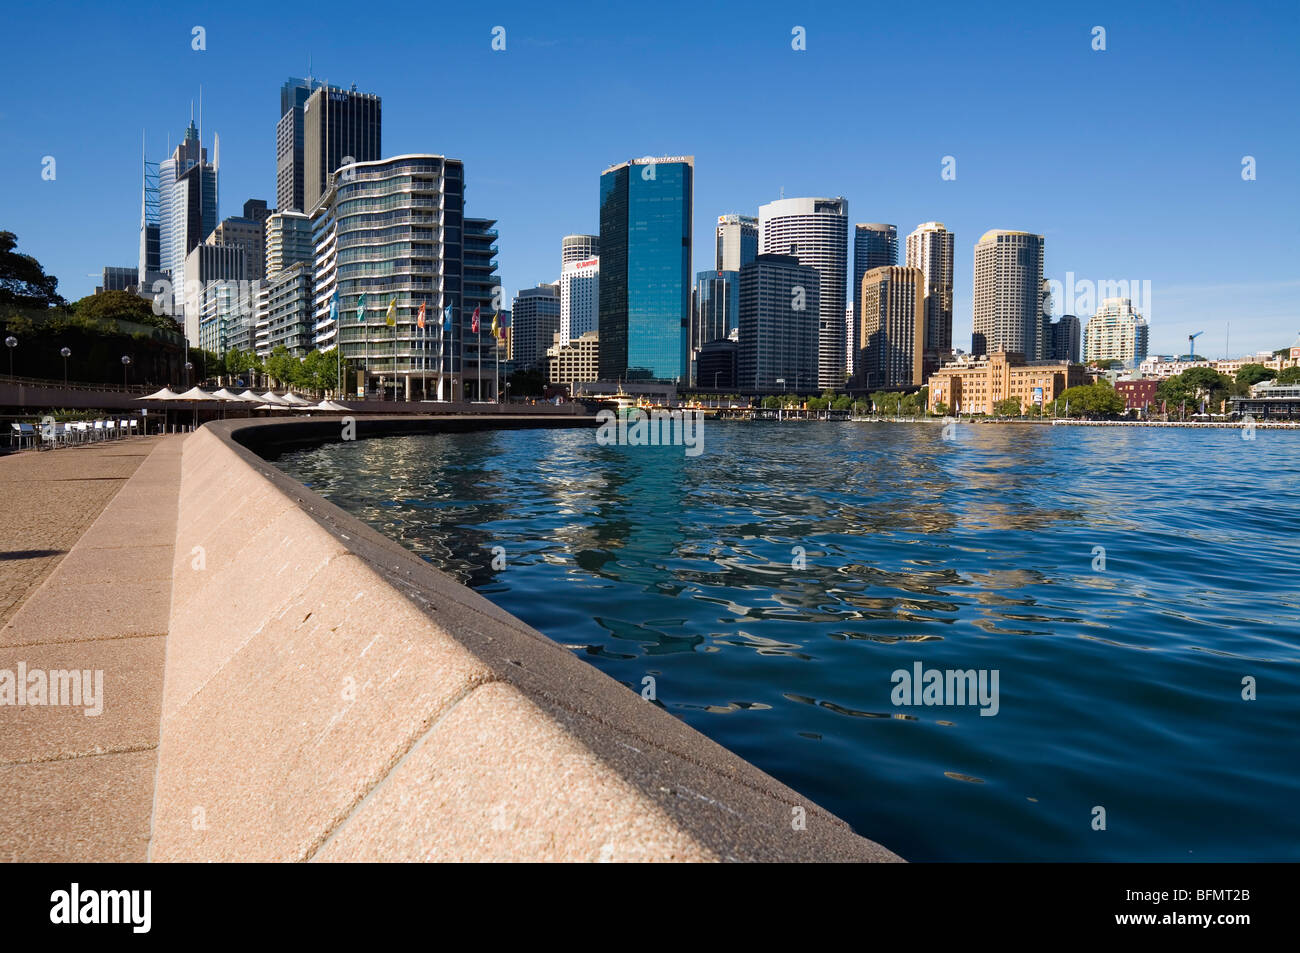 Australia, New South Wales, Sydney.  View along Sydney Cove waterfront towards Circular Quay and the city skyline. - Stock Image